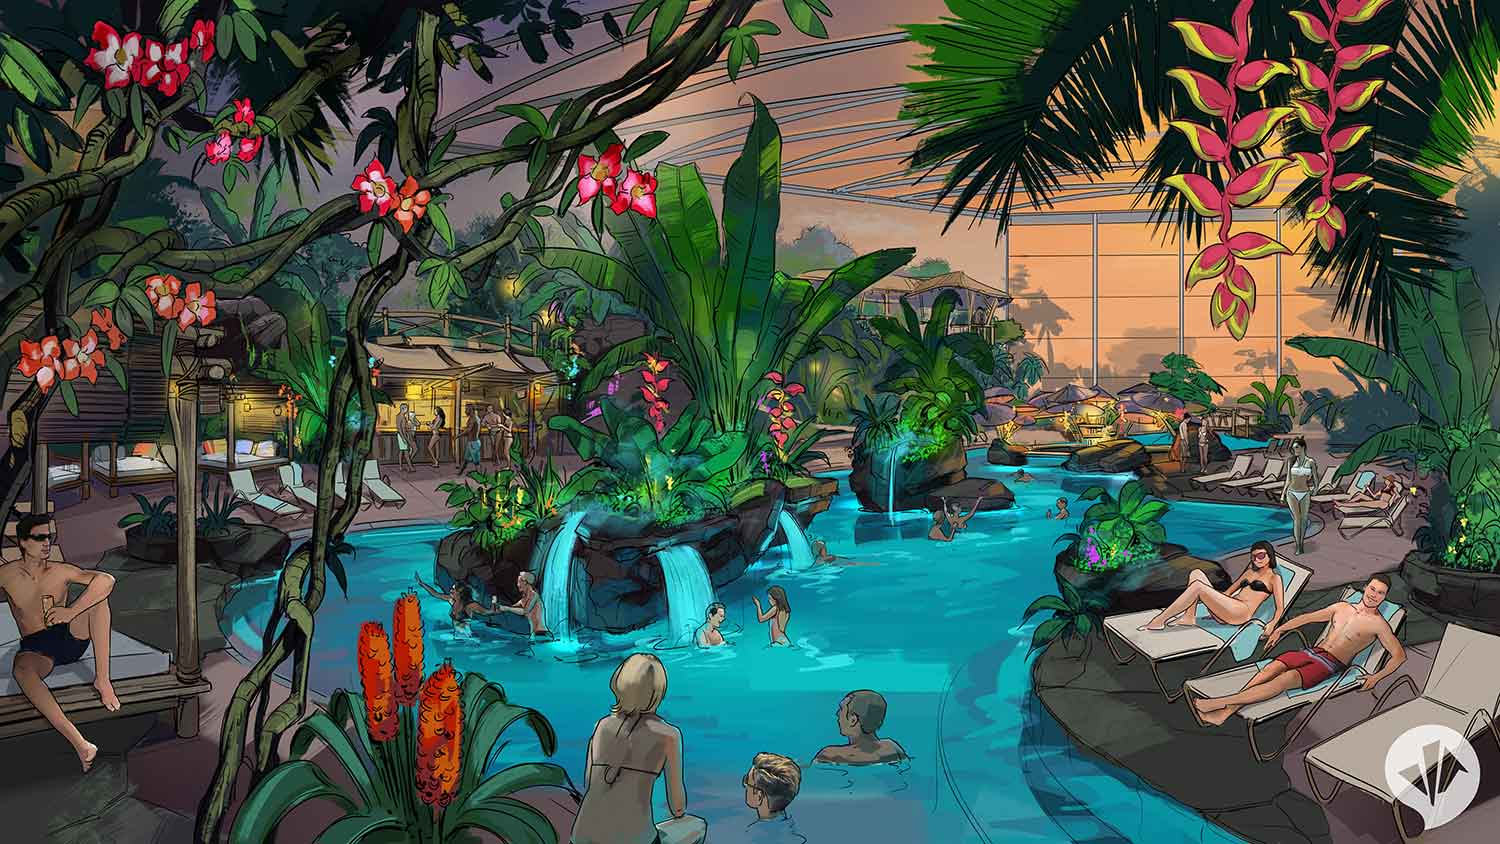 Waterpark future concept dan pearlman